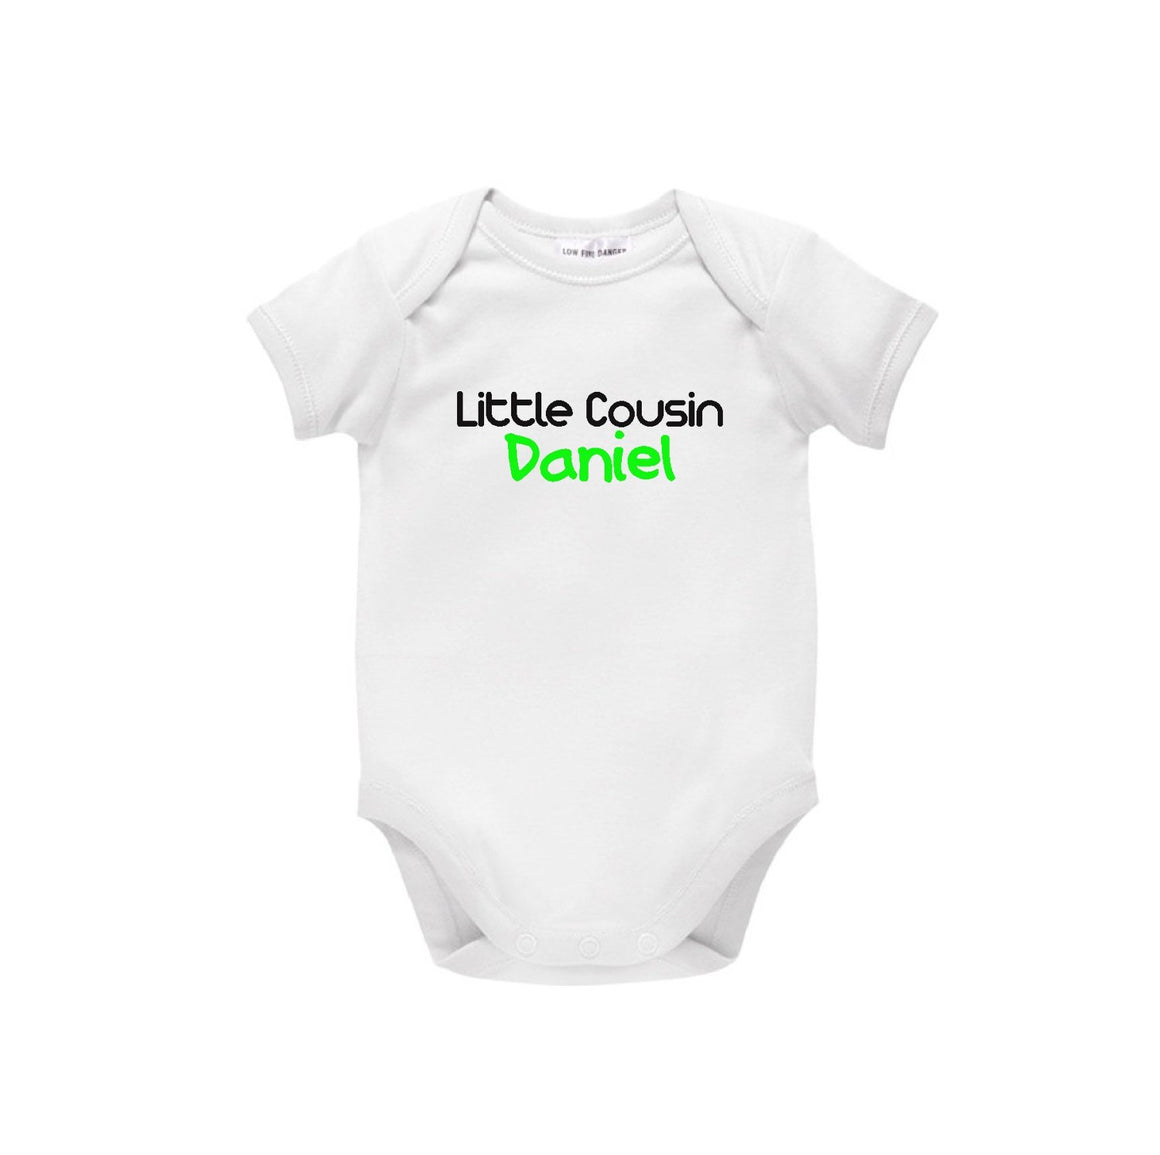 Little Cousin Personalised Baby Bodysuit, Pregnancy Announcement, Family Clothing, New Baby Gift, Baby Shower Gift, Cousin To Be, U-W-BS